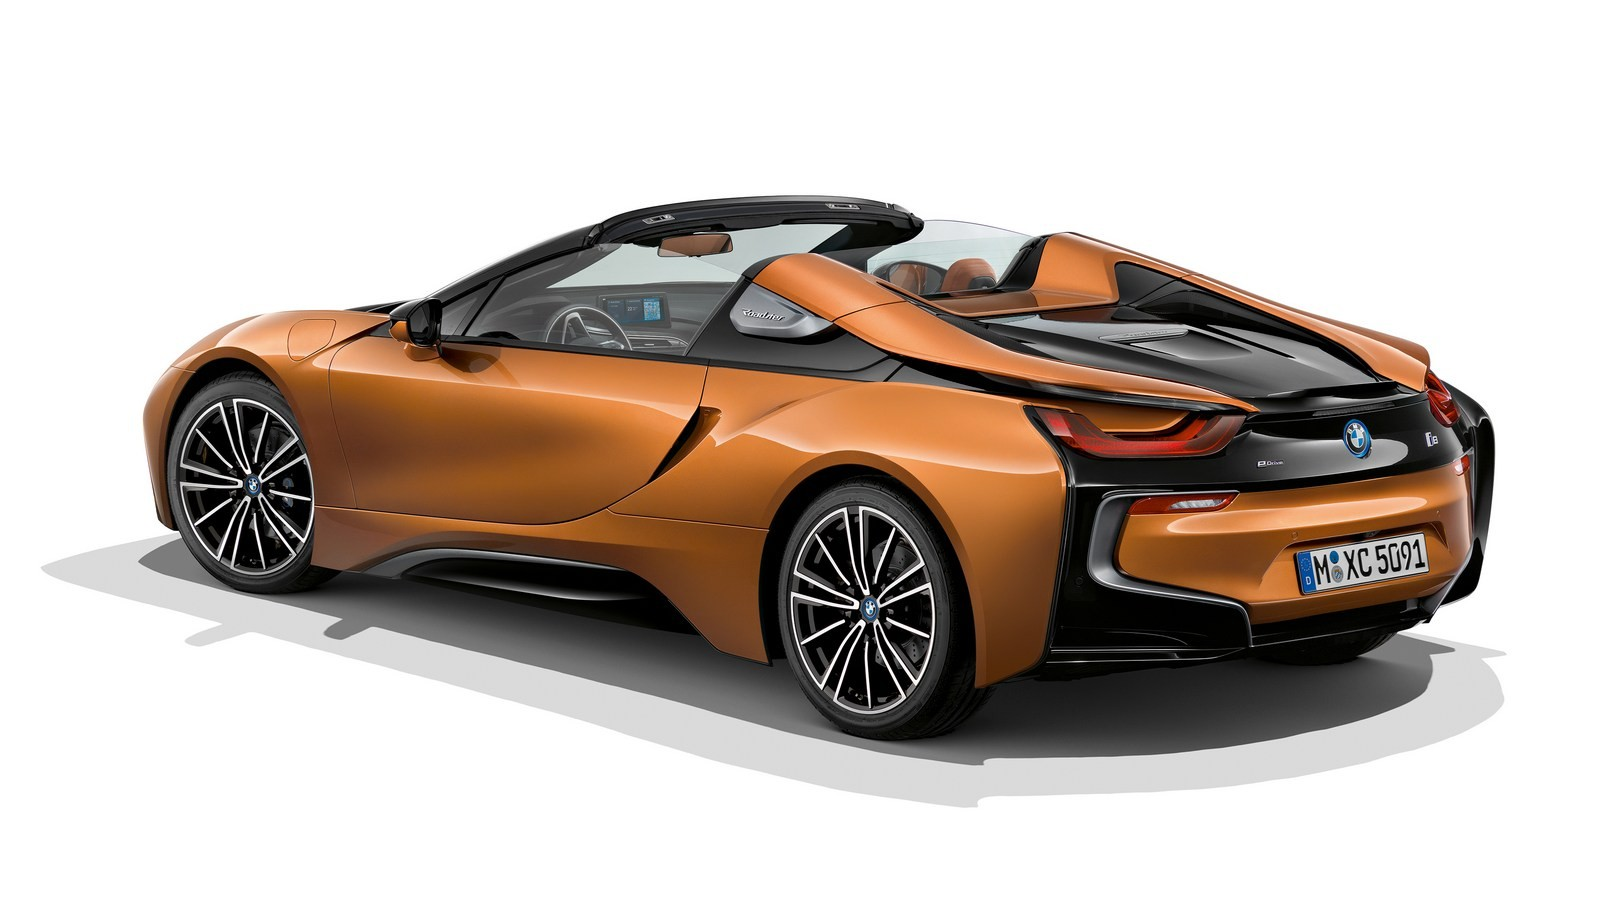 P90306437_highRes_bmw-i8-roadster-with